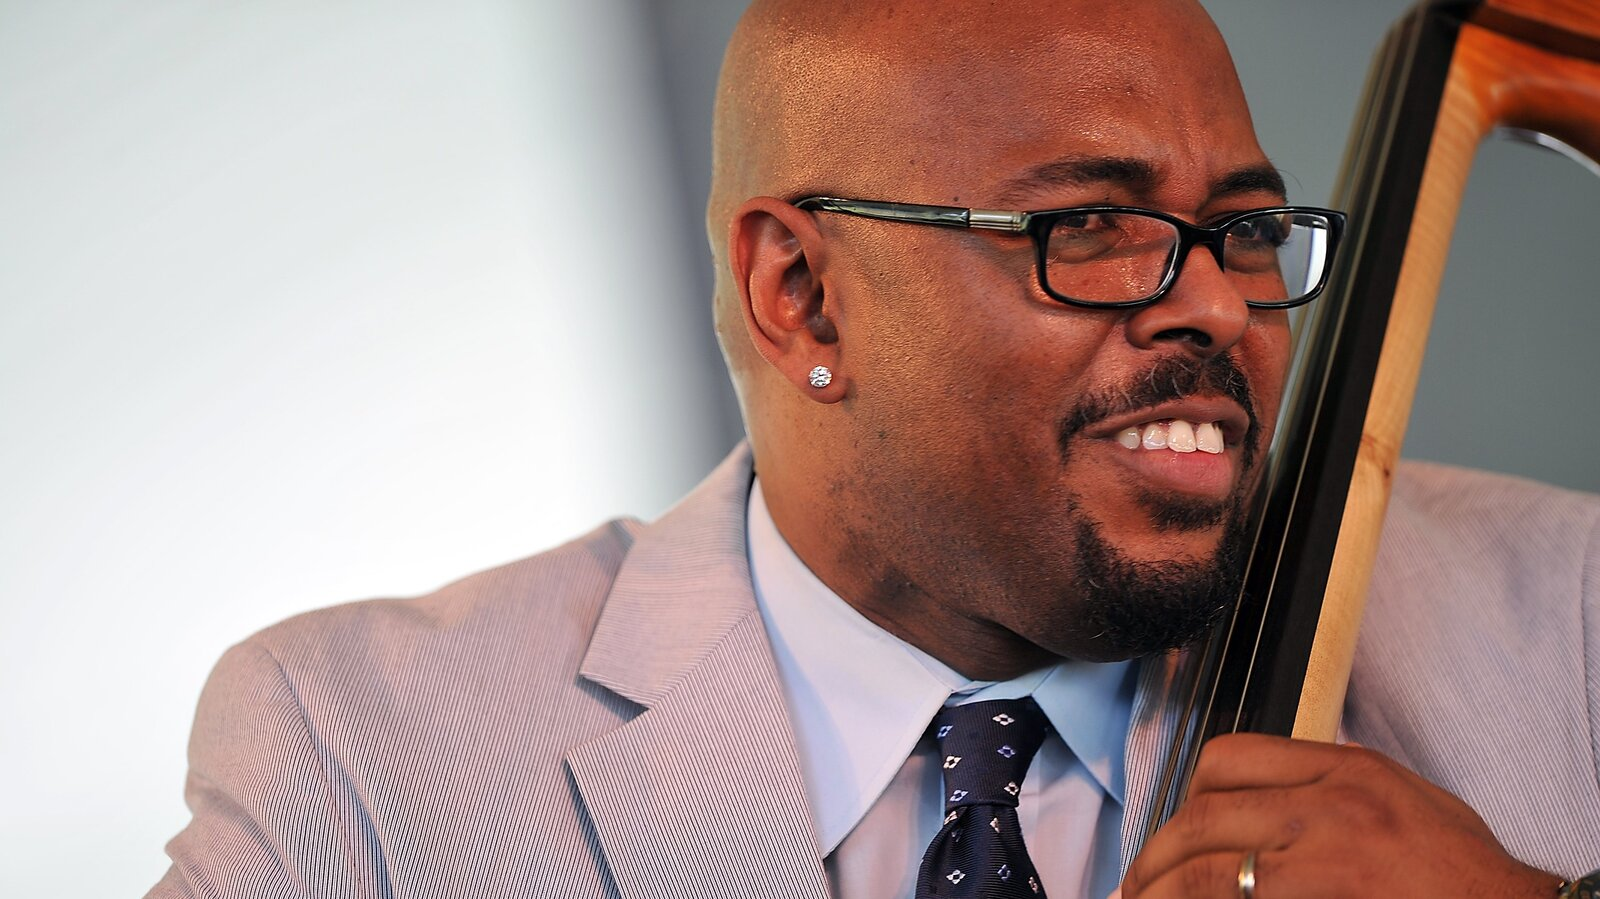 Christian McBride | Eva Hambach/AFP/Getty Images | via NPR